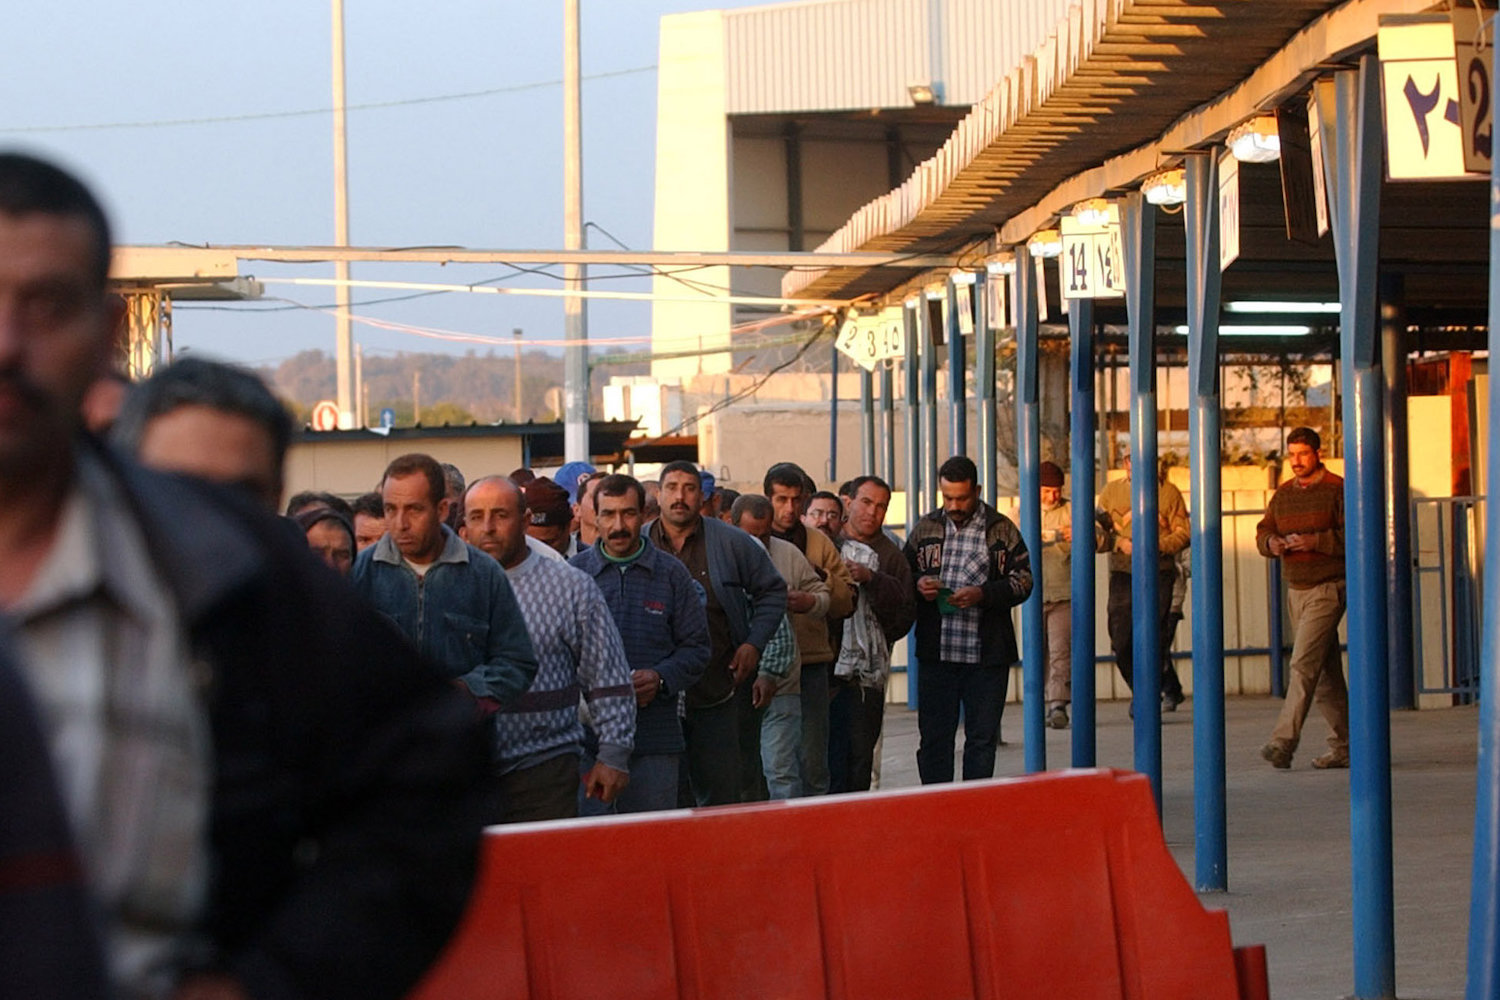 Palestinian workers return to the Gaza Strip at the end of their work day from the Erez Industrial Zone. Erez Crossing, Gaza, March 9, 2004. (Sharon Perry/Flash90)